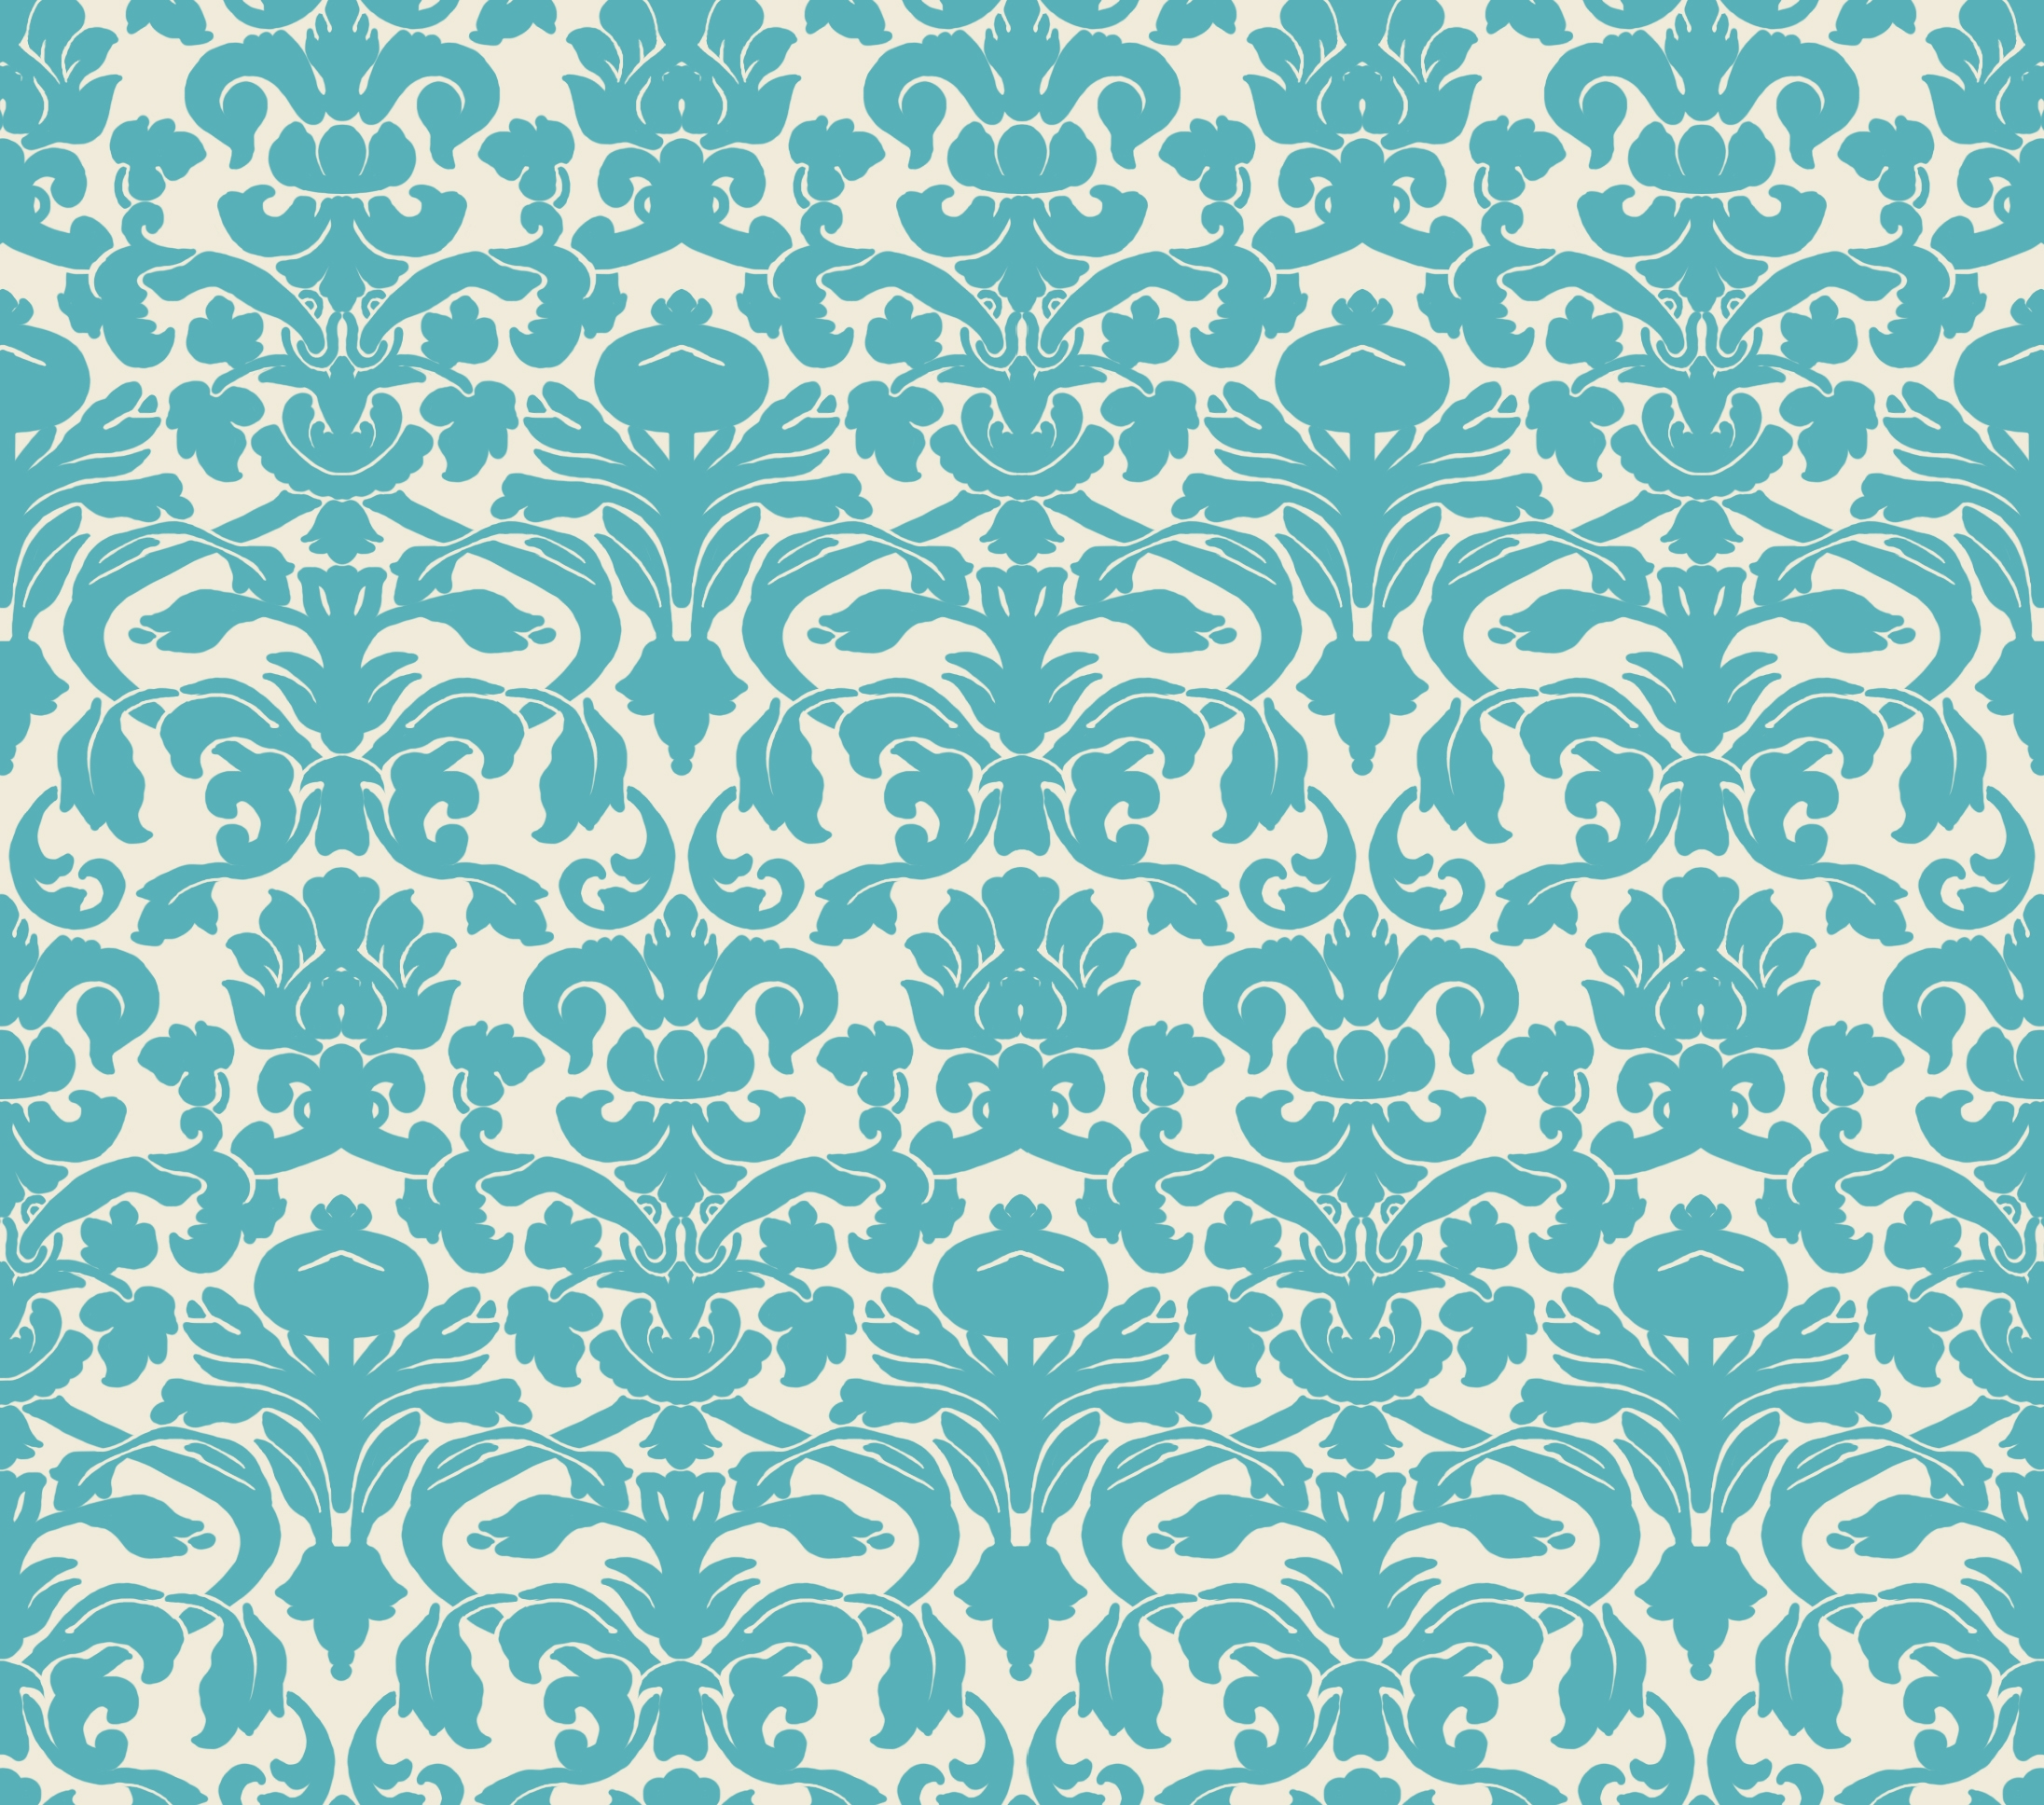 17+ images about Wallpapers & Patterns on Pinterest | Velvet